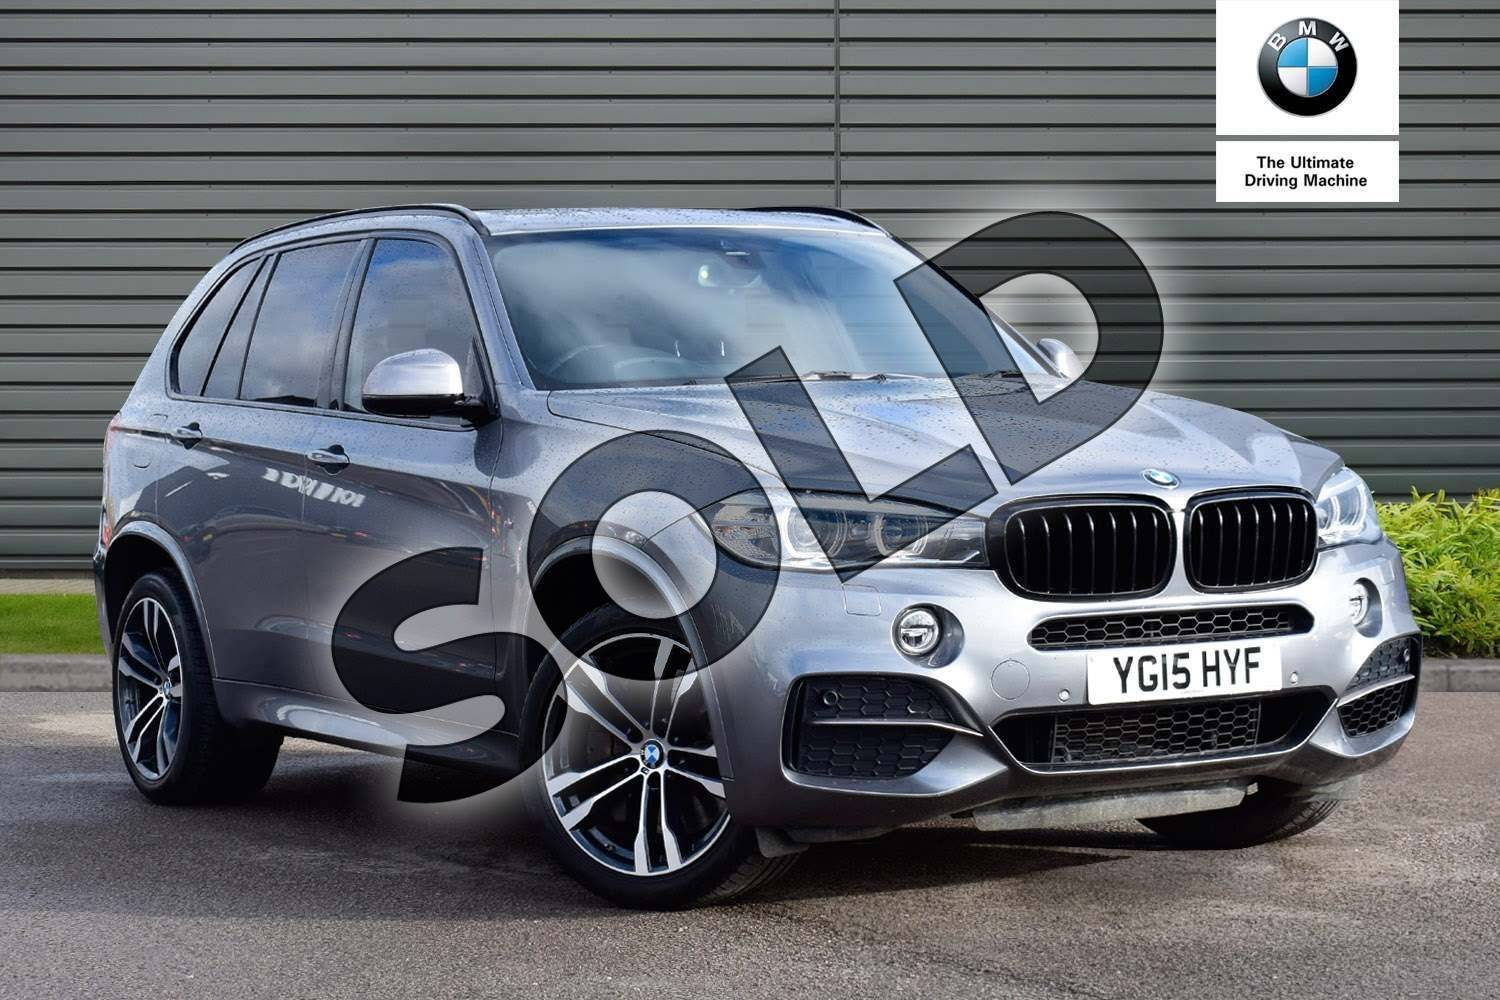 2015 BMW X5 Diesel Estate xDrive M50d 5dr Auto (7 Seat) in Space Grey at Listers Boston (BMW)